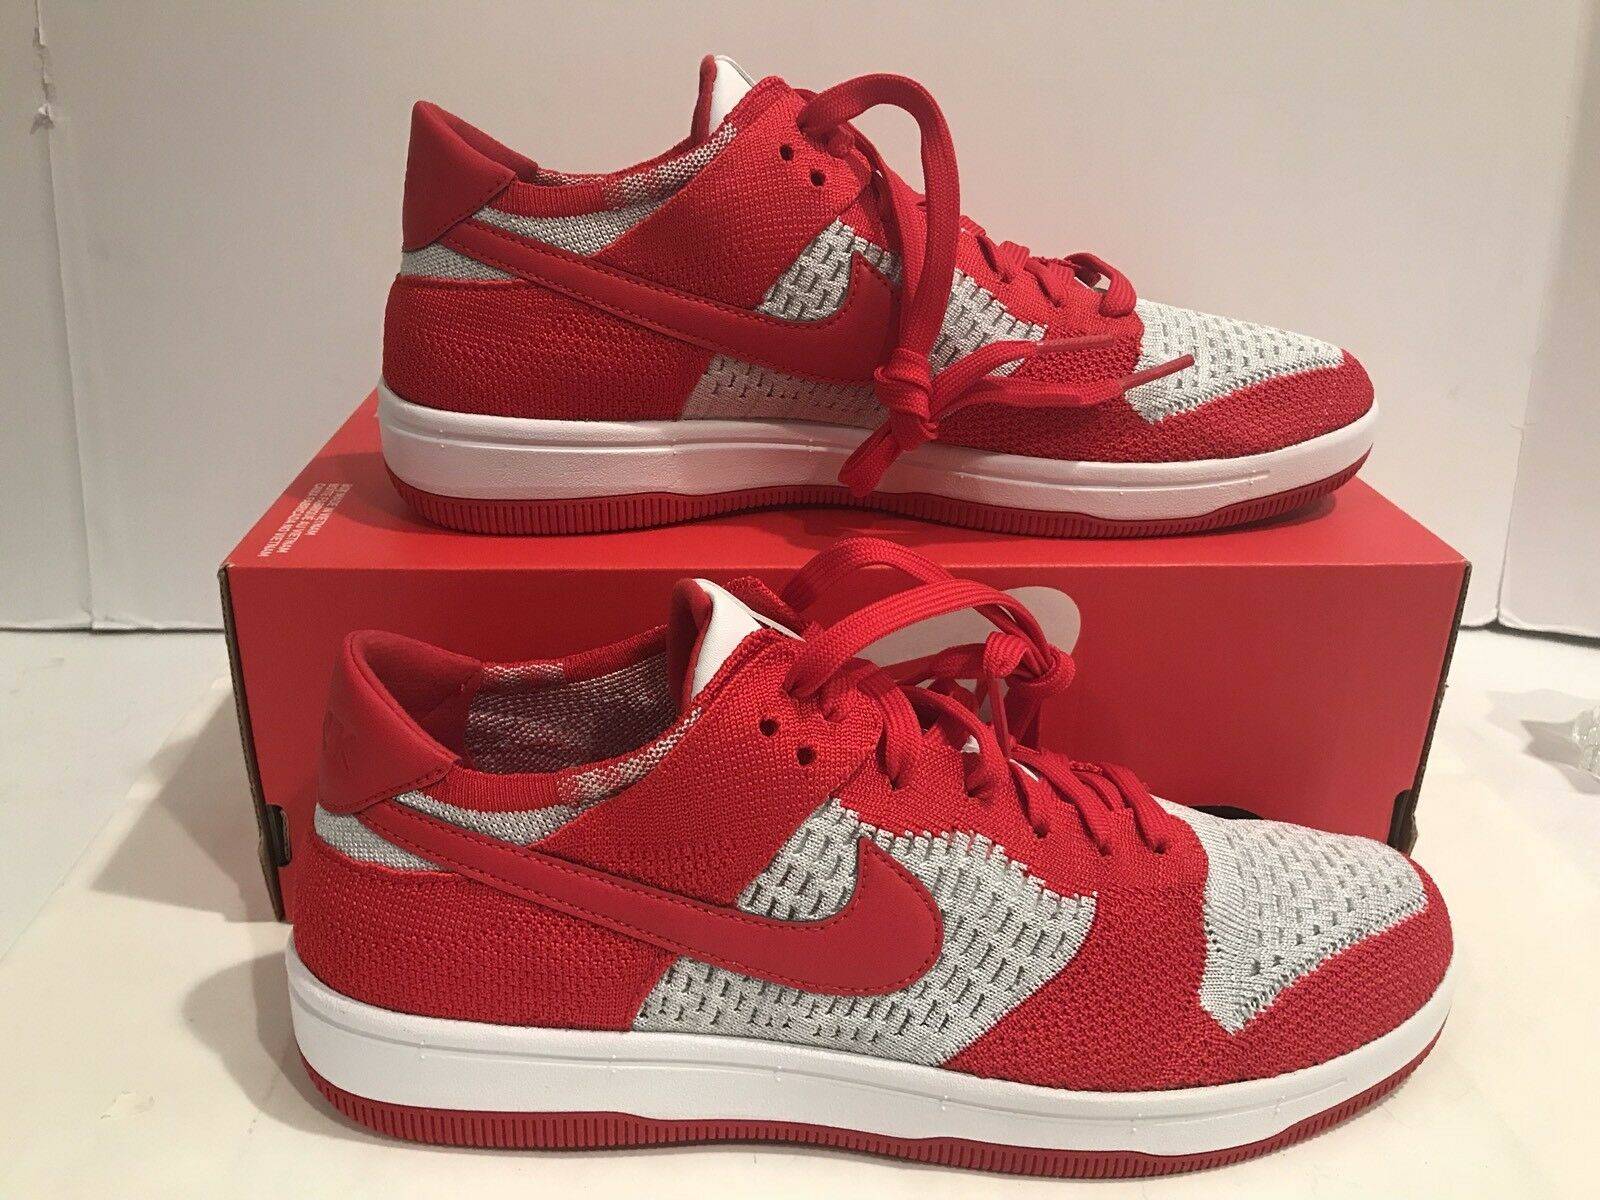 Men's Nike Dunk Flyknit Red White Wolf-Grey Running Shoes 917746 600